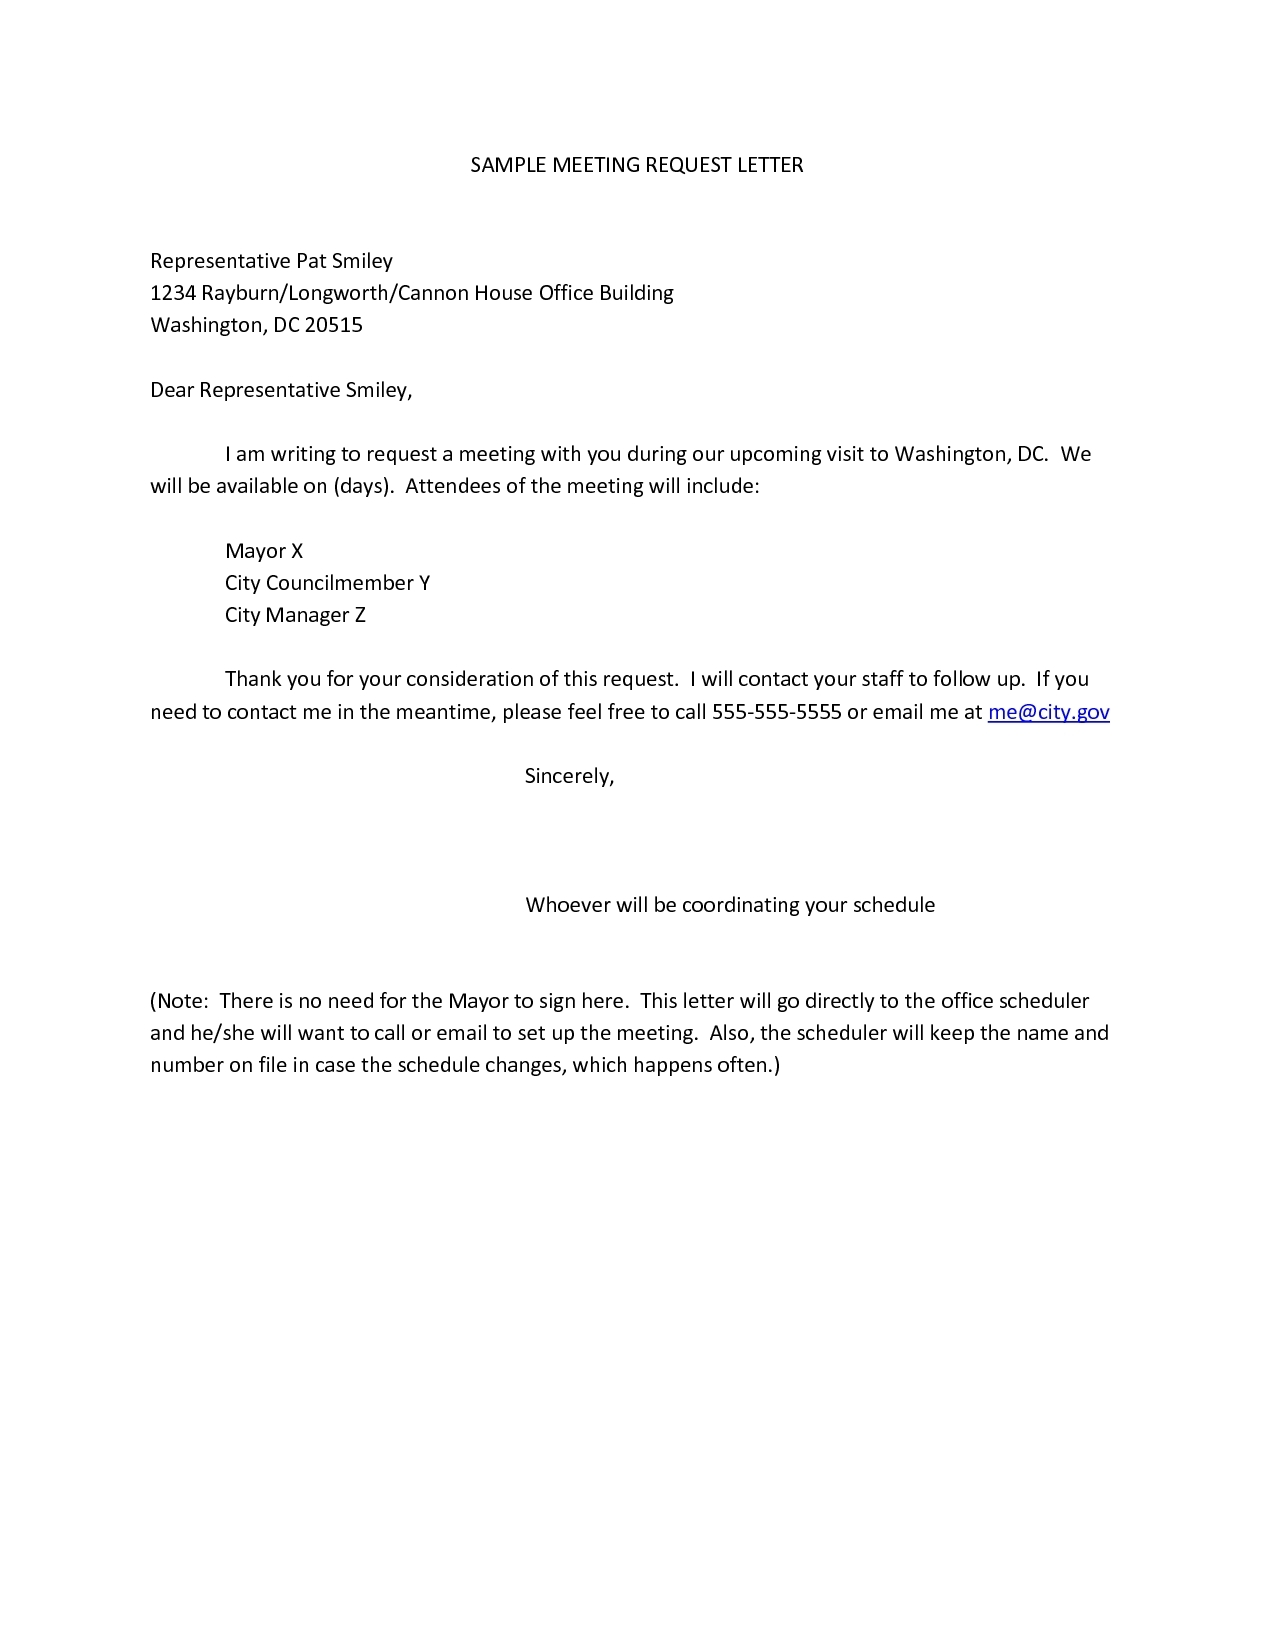 Sample of business meeting letter.